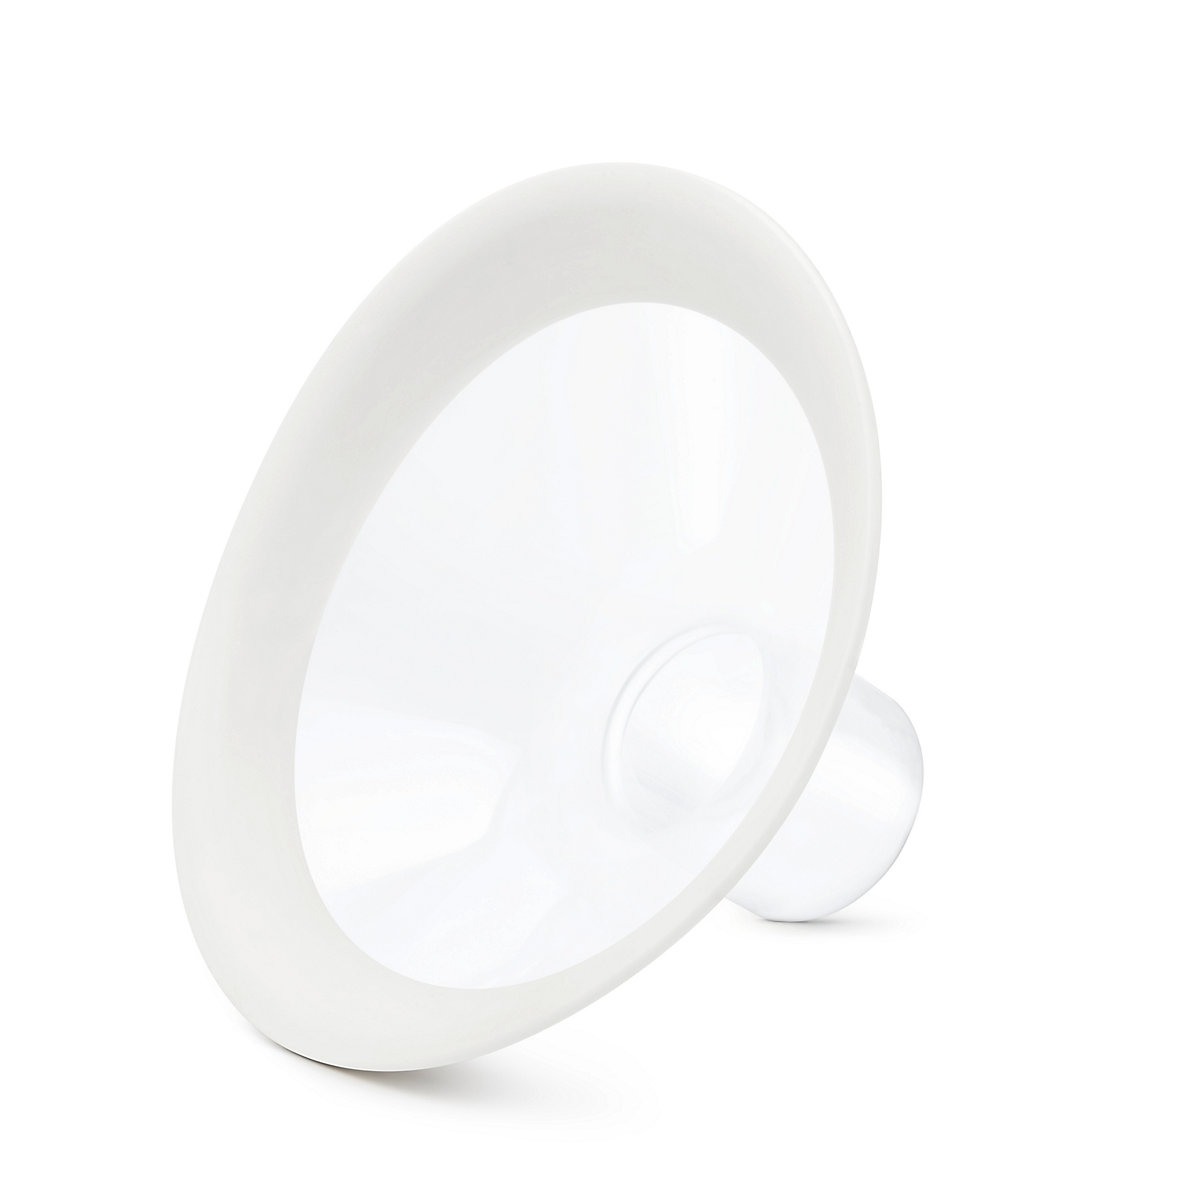 Medela personalfit flex breast shield - 24mm